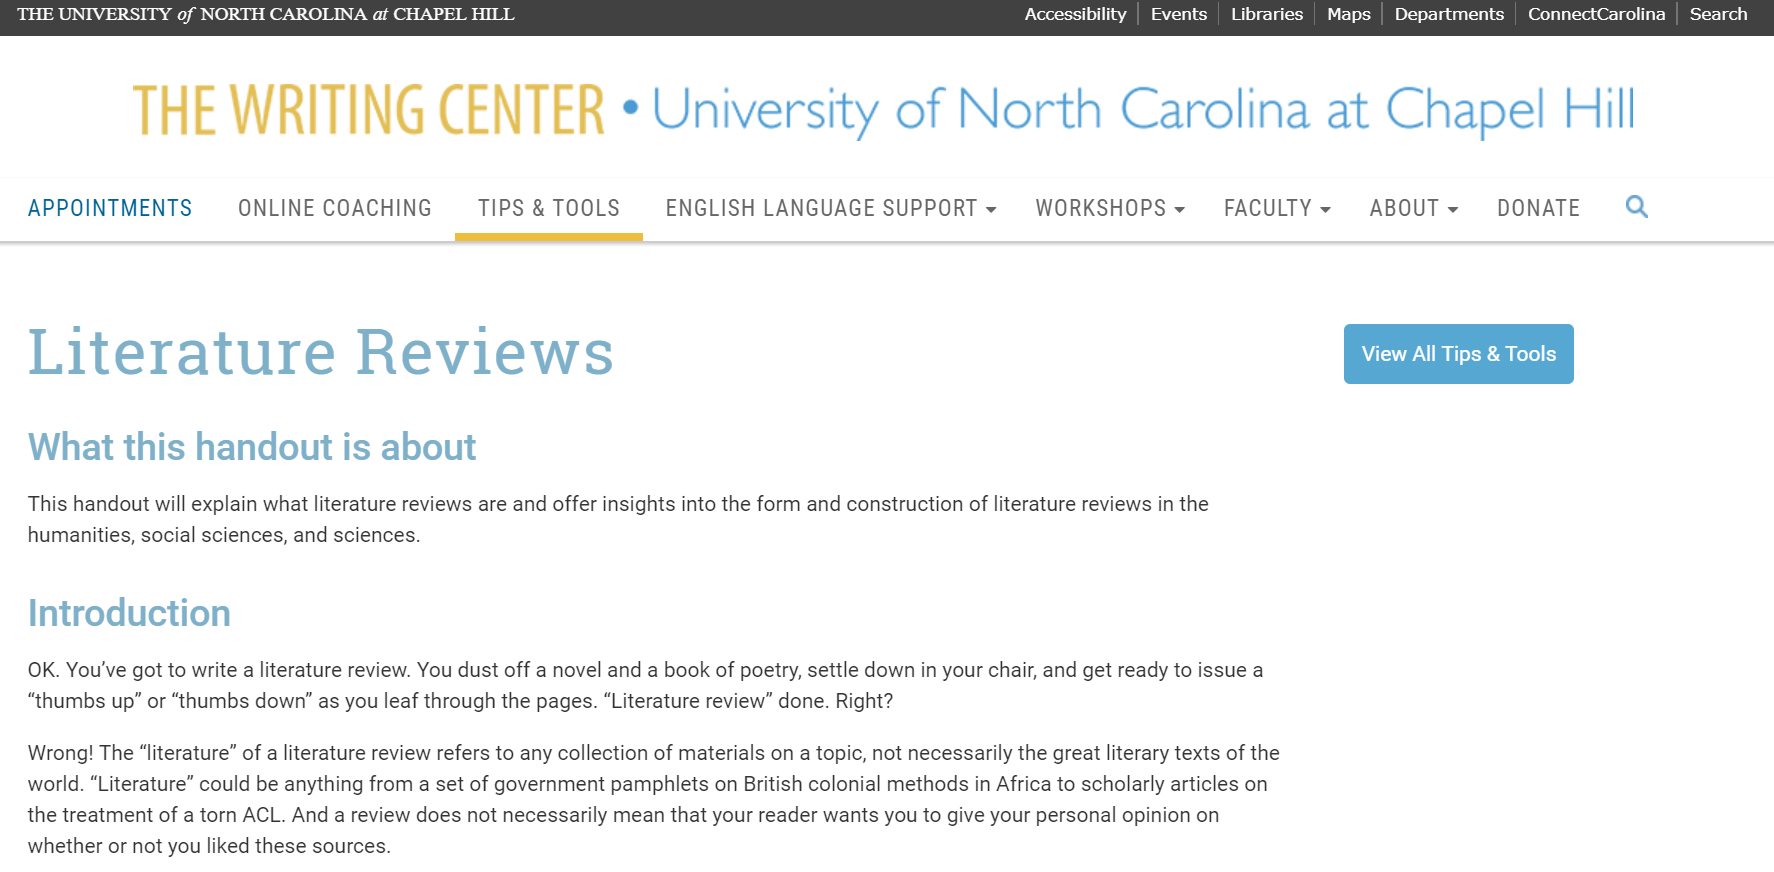 Image linking to UNC writing center.